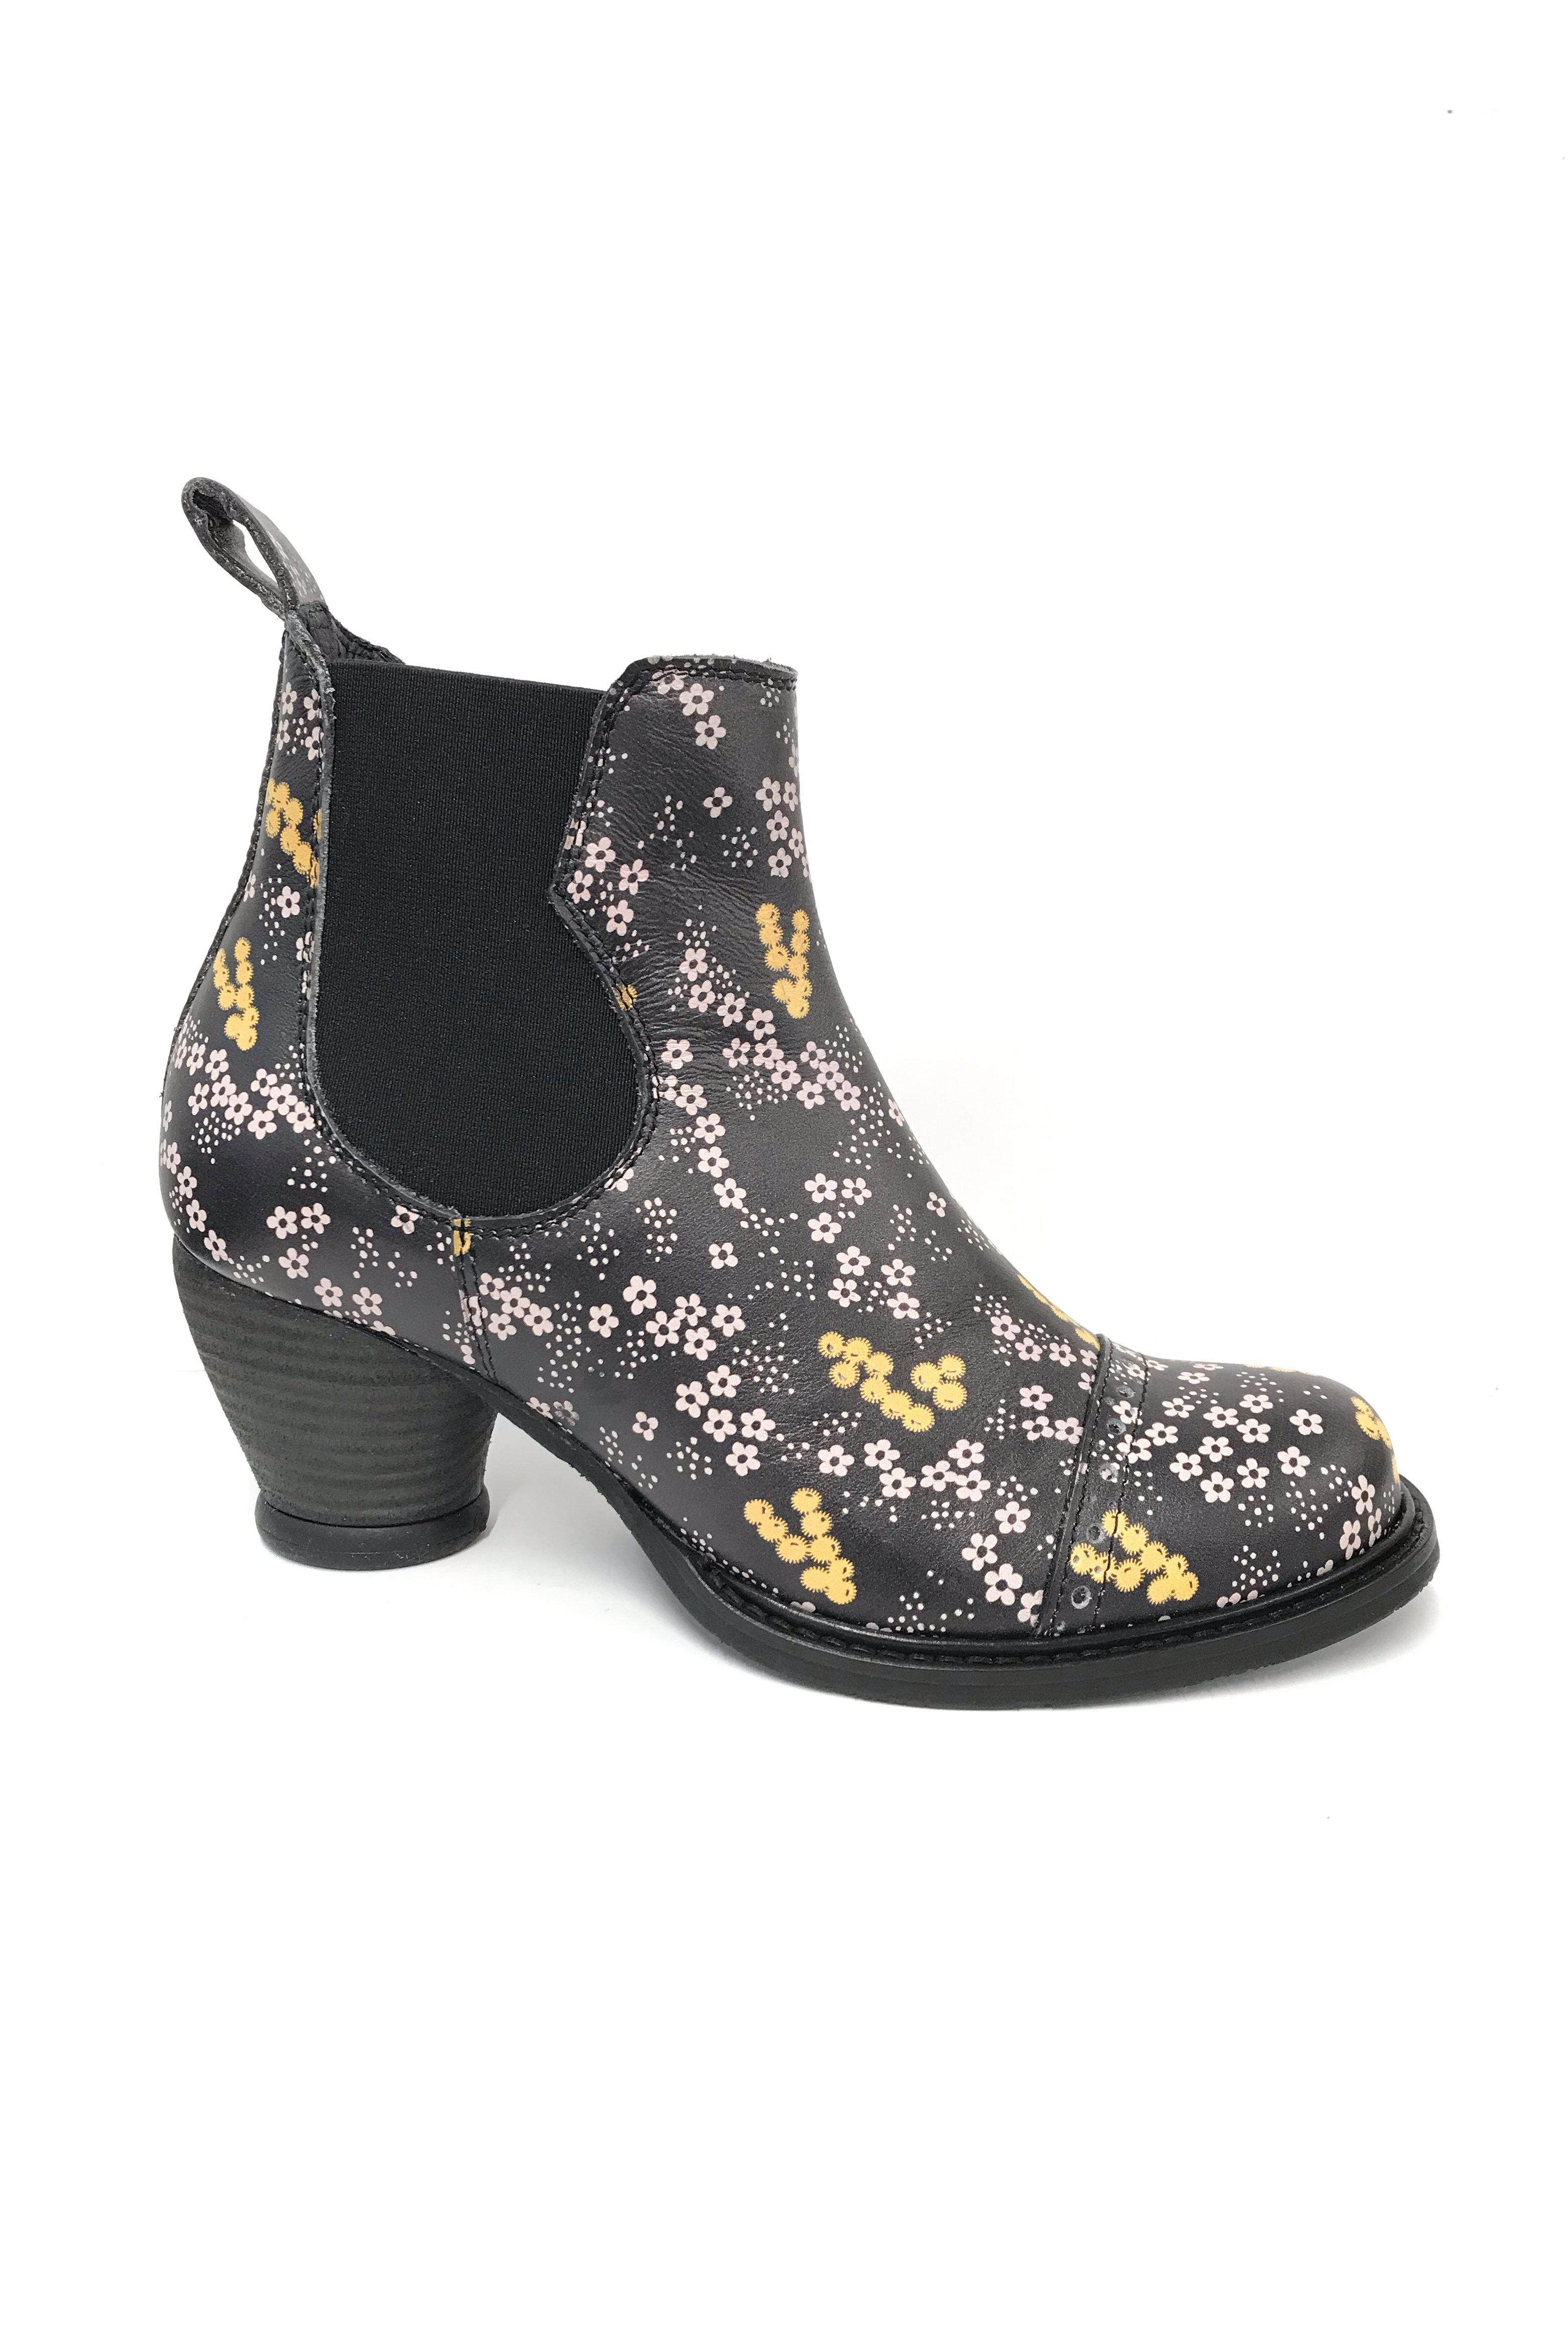 Ditsy Blooms Chelsea Boot Black